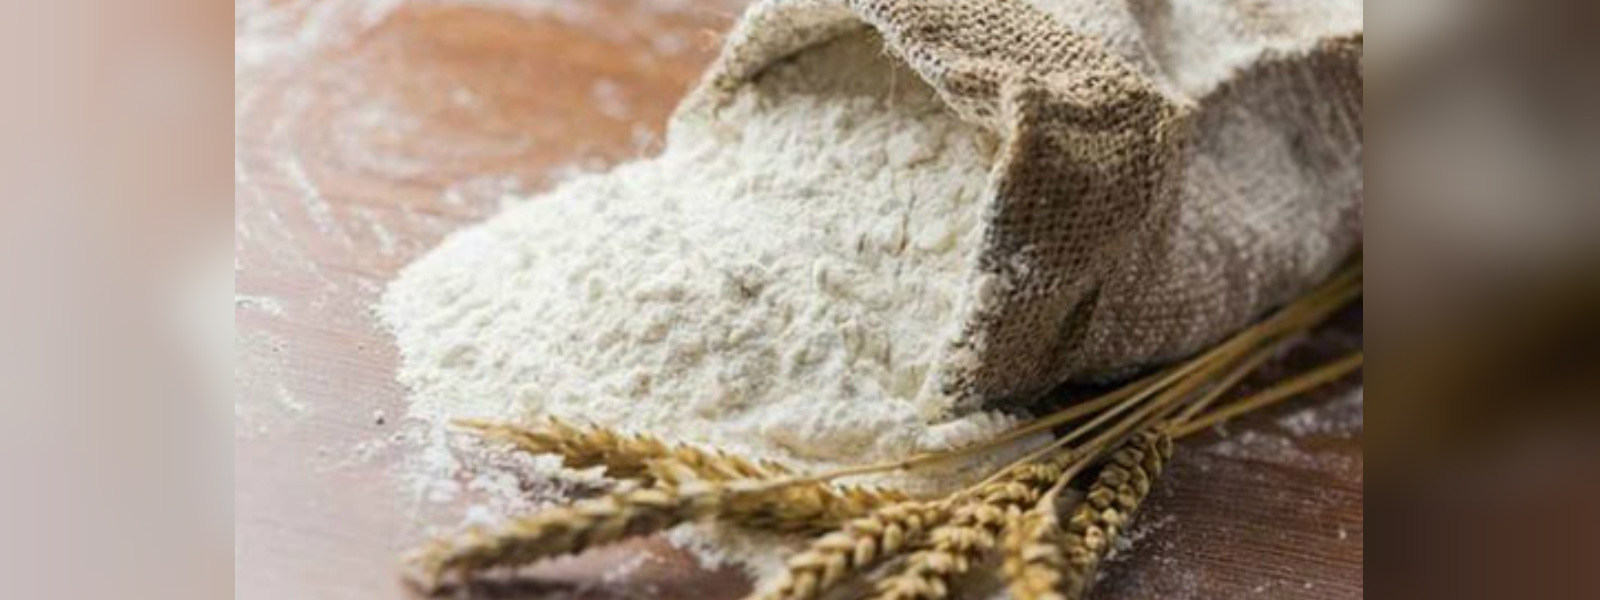 CAA launch raids to nab vendors who sell high priced wheat flour